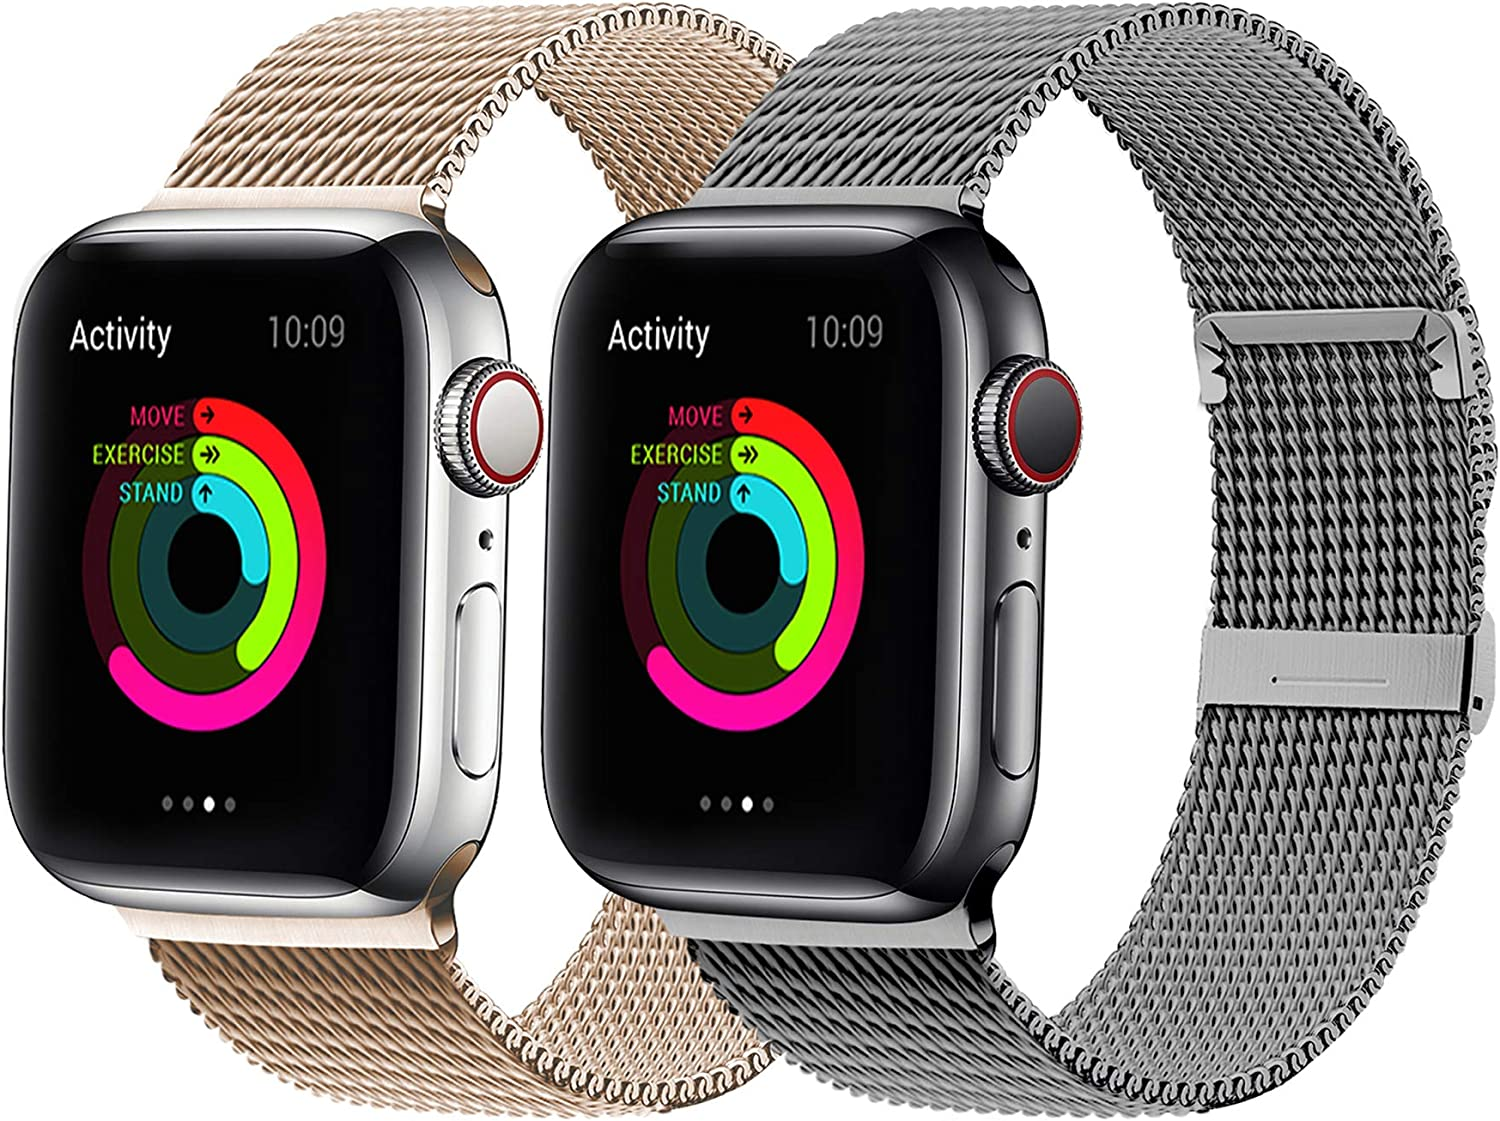 YC YANCH 2 Pack Bands Compatible for Apple Watch 38mm 40mm 42mm 44mm, Adjustable Stainless Steel Mesh Metal Loop Replacement Band Compatible for iWatch Series 6/SE/5/4/3/2/1